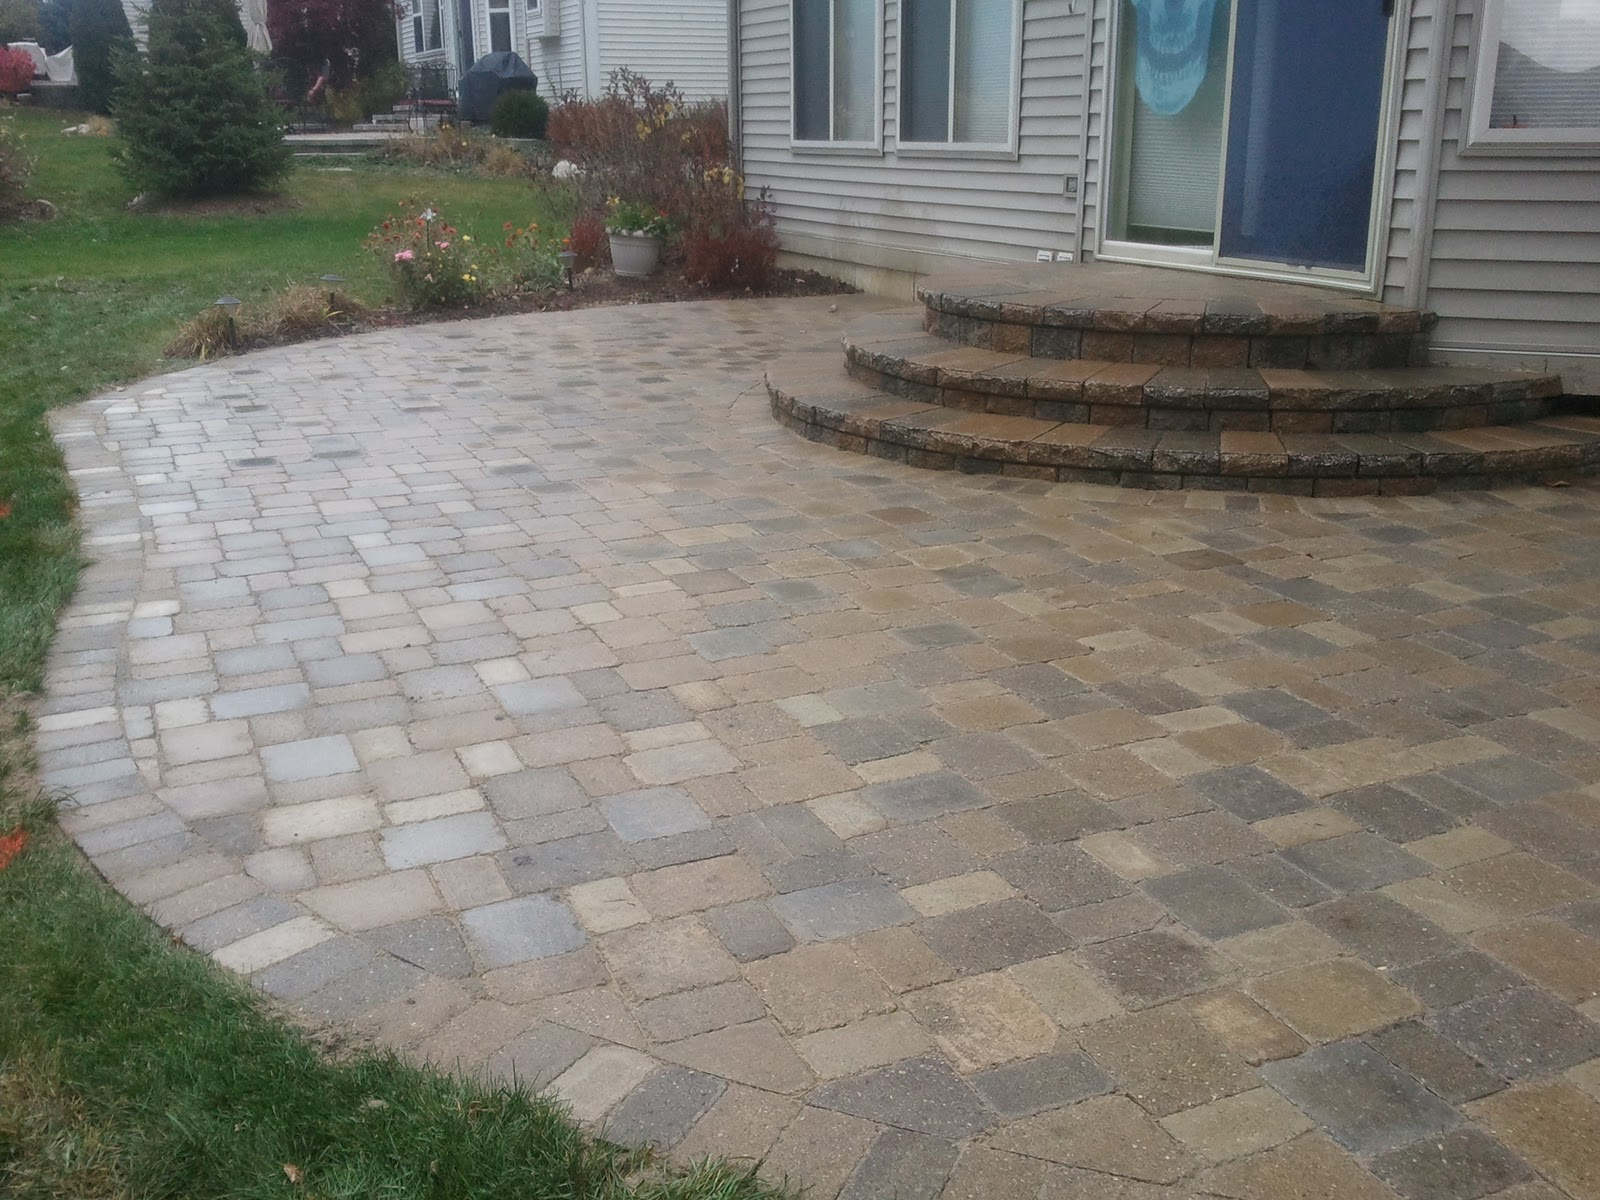 Patio stone pavers patio design ideas - Paver designs for backyard ...